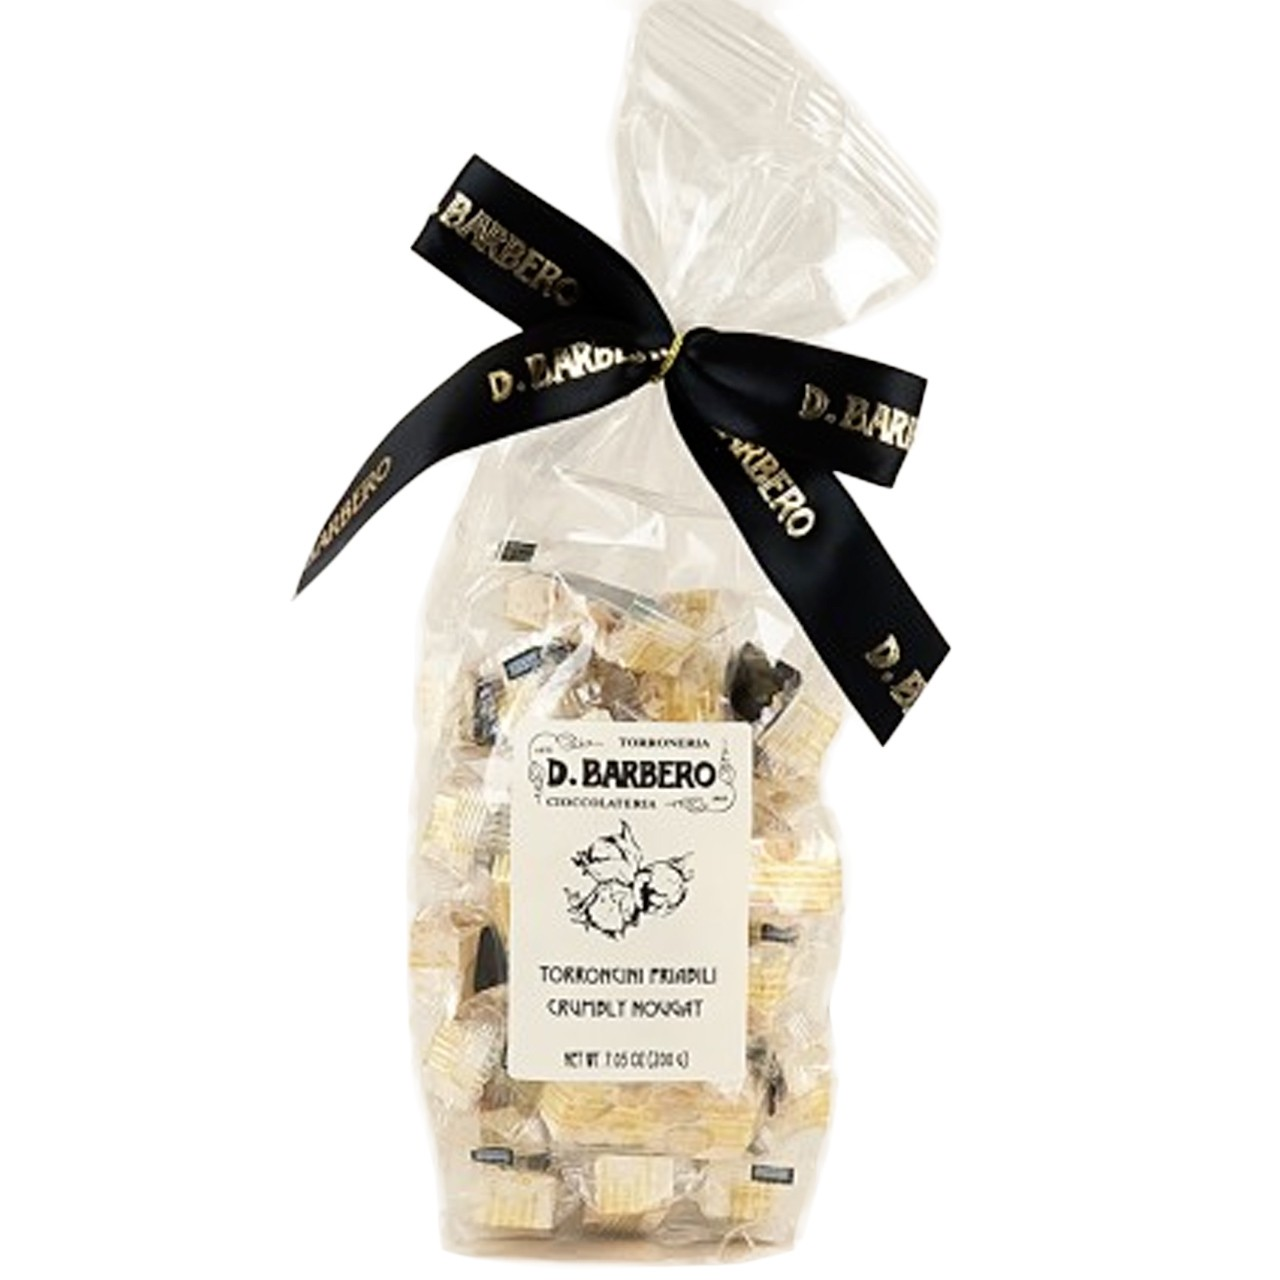 Nougat crumbly with Piedmont hazelnuts IGP